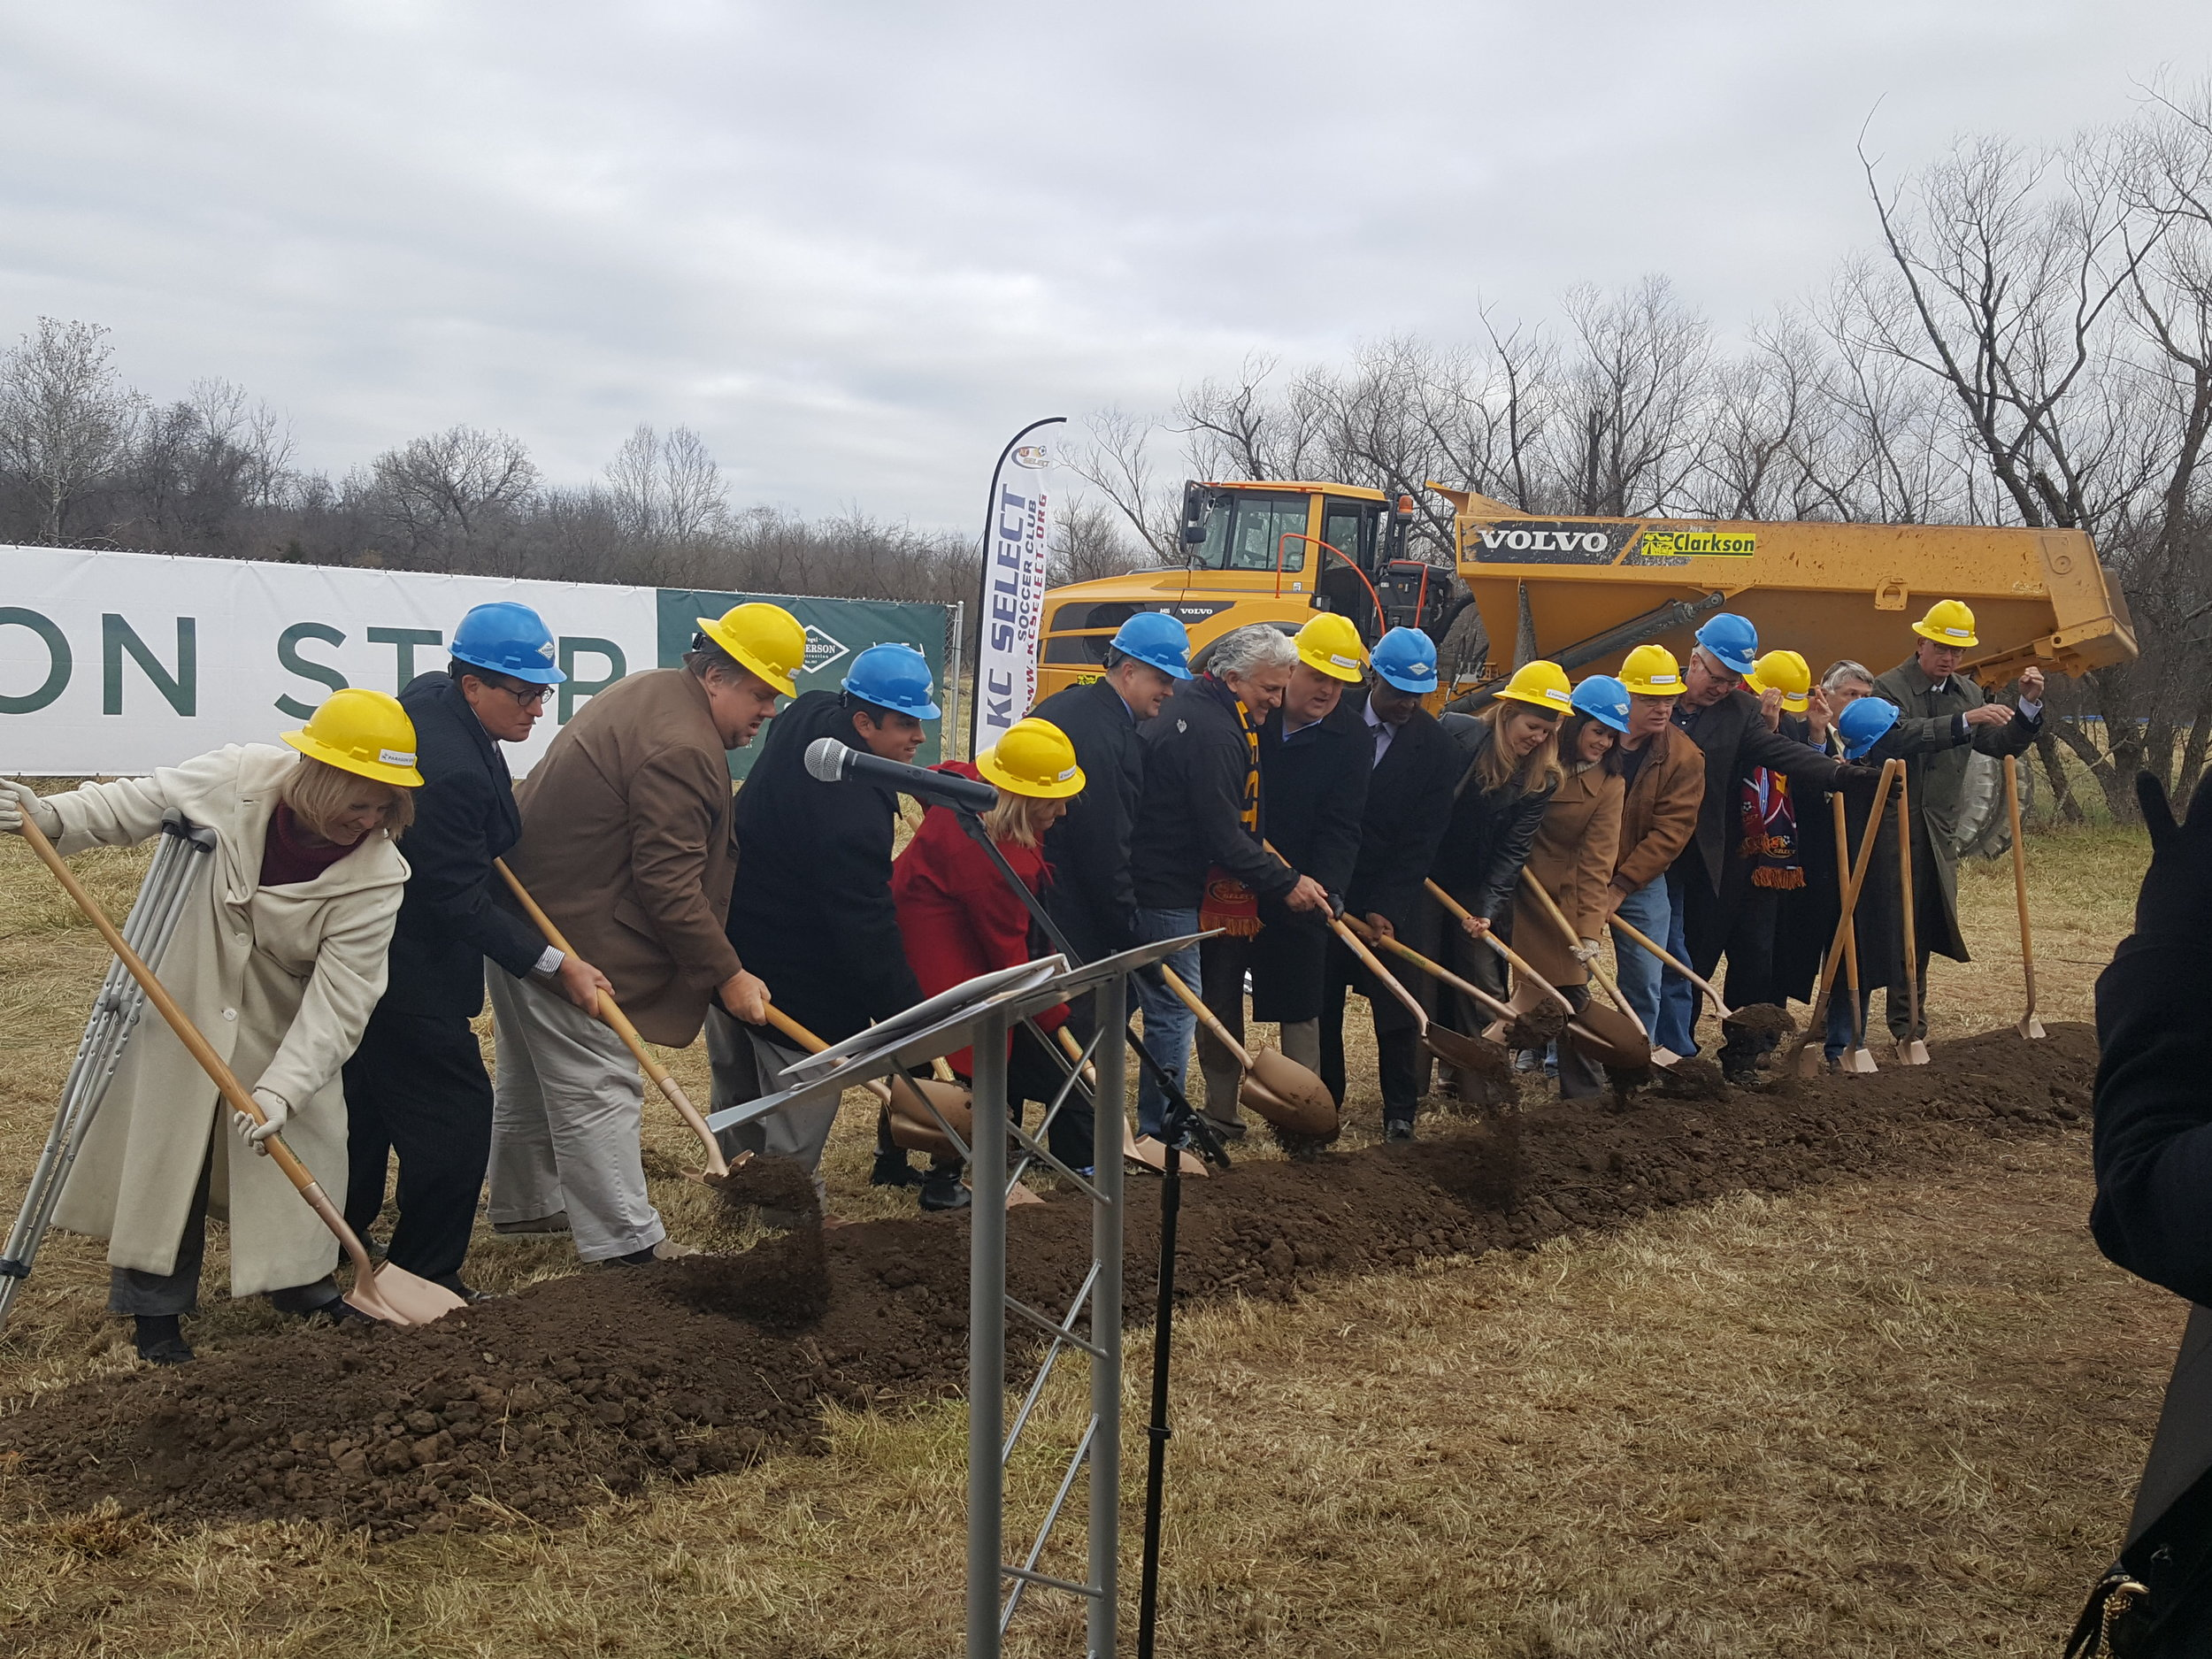 Developers Flip Short and Bill Brown along with state and local dignitaries led the Paragon Star groundbreaking ceremony Wednesday morning.